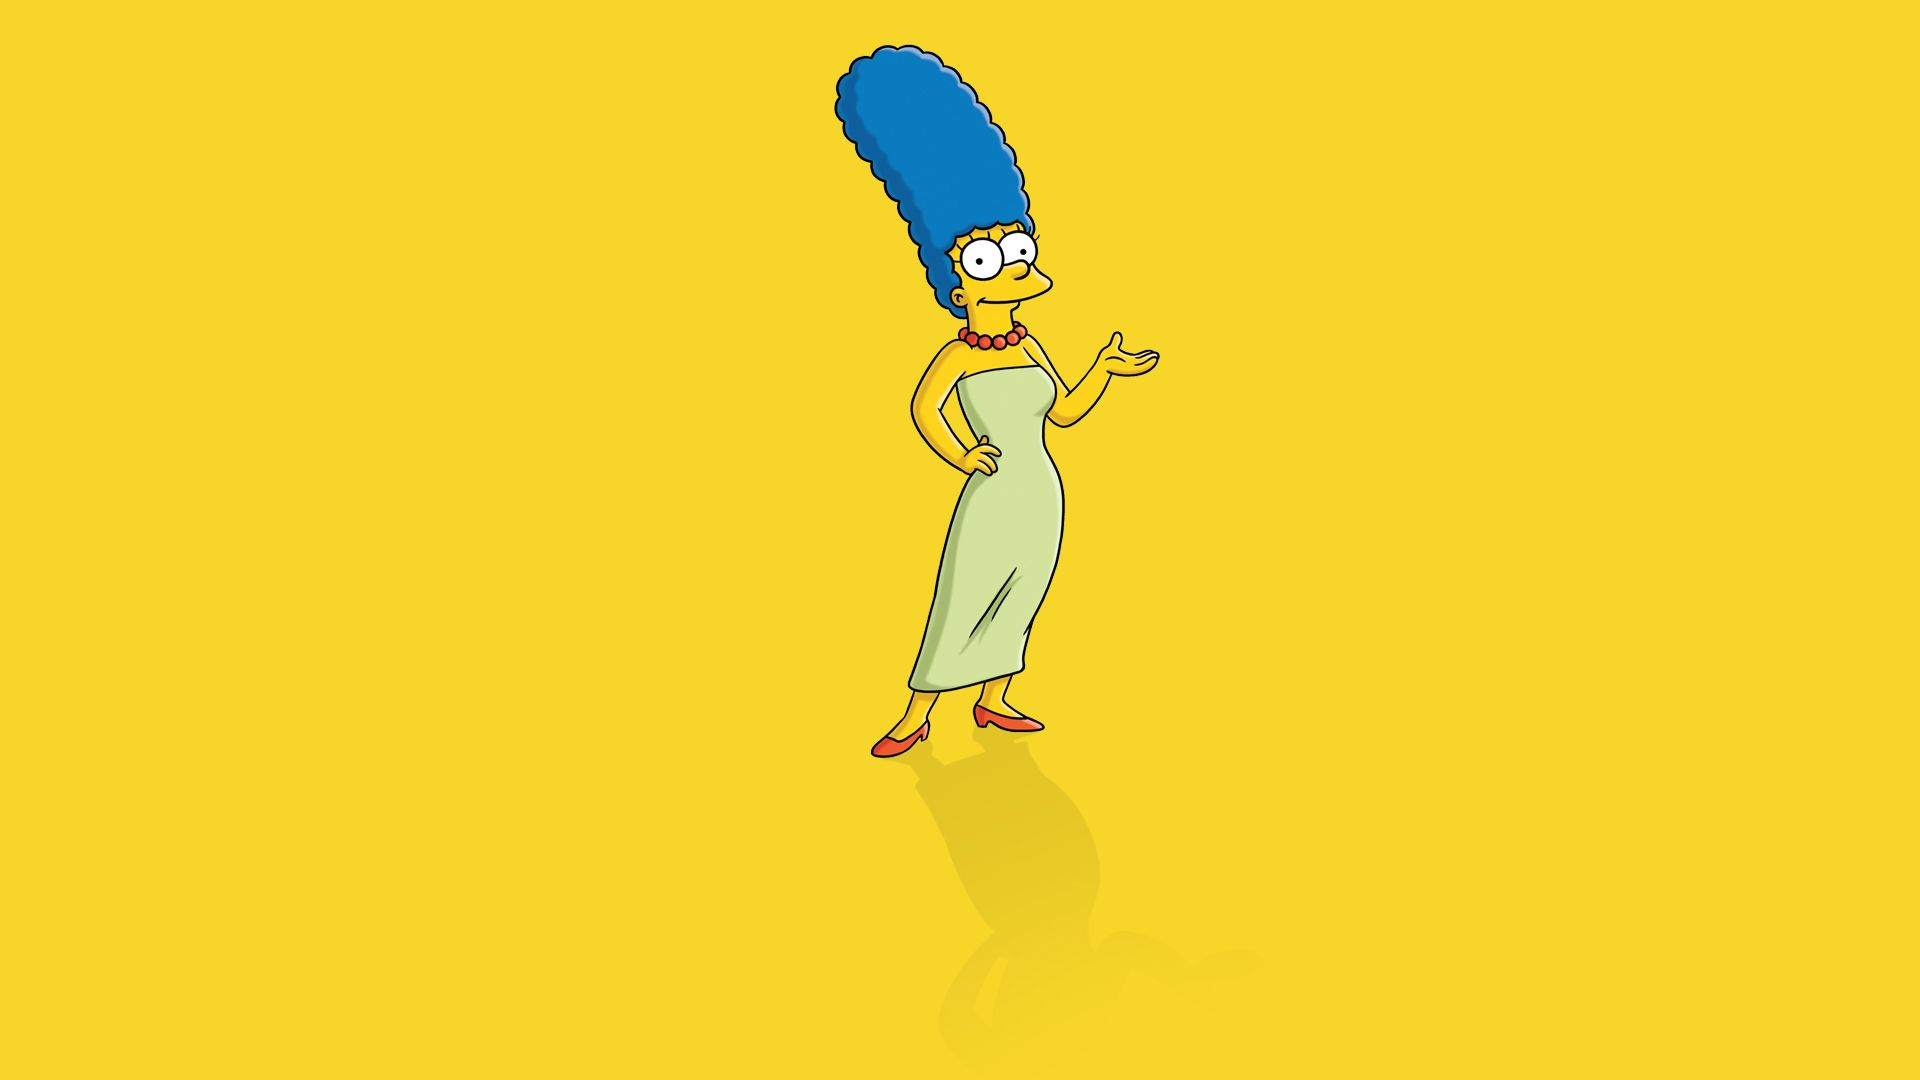 1920x1080 Marge Simpson - Wallpaper, High Definition, High Quality ...